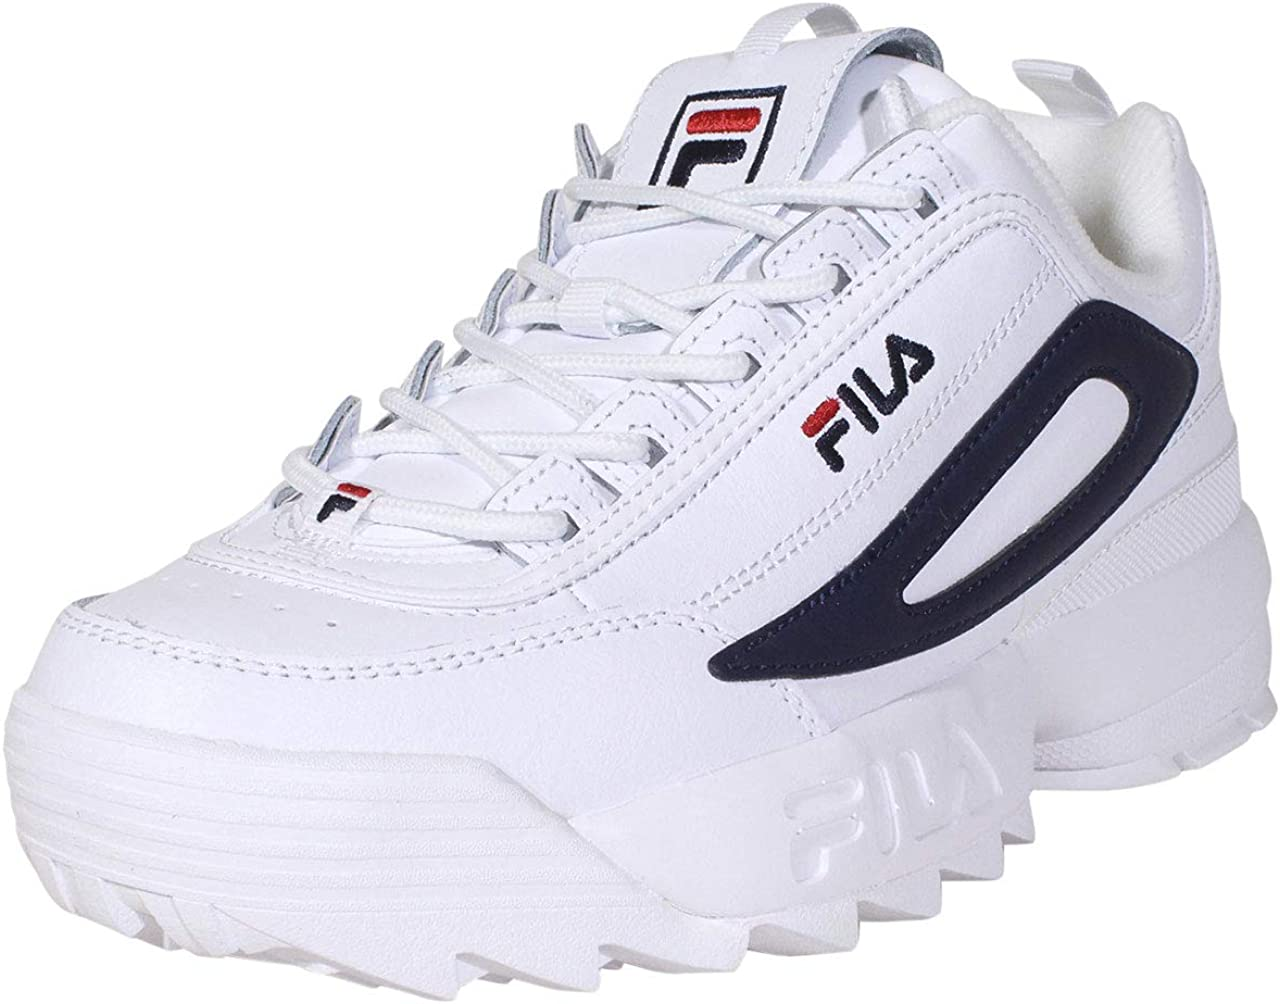 Fila Men's Disruptor New products, world's highest quality popular! Over item handling II Shoes Logo Sneakers XL